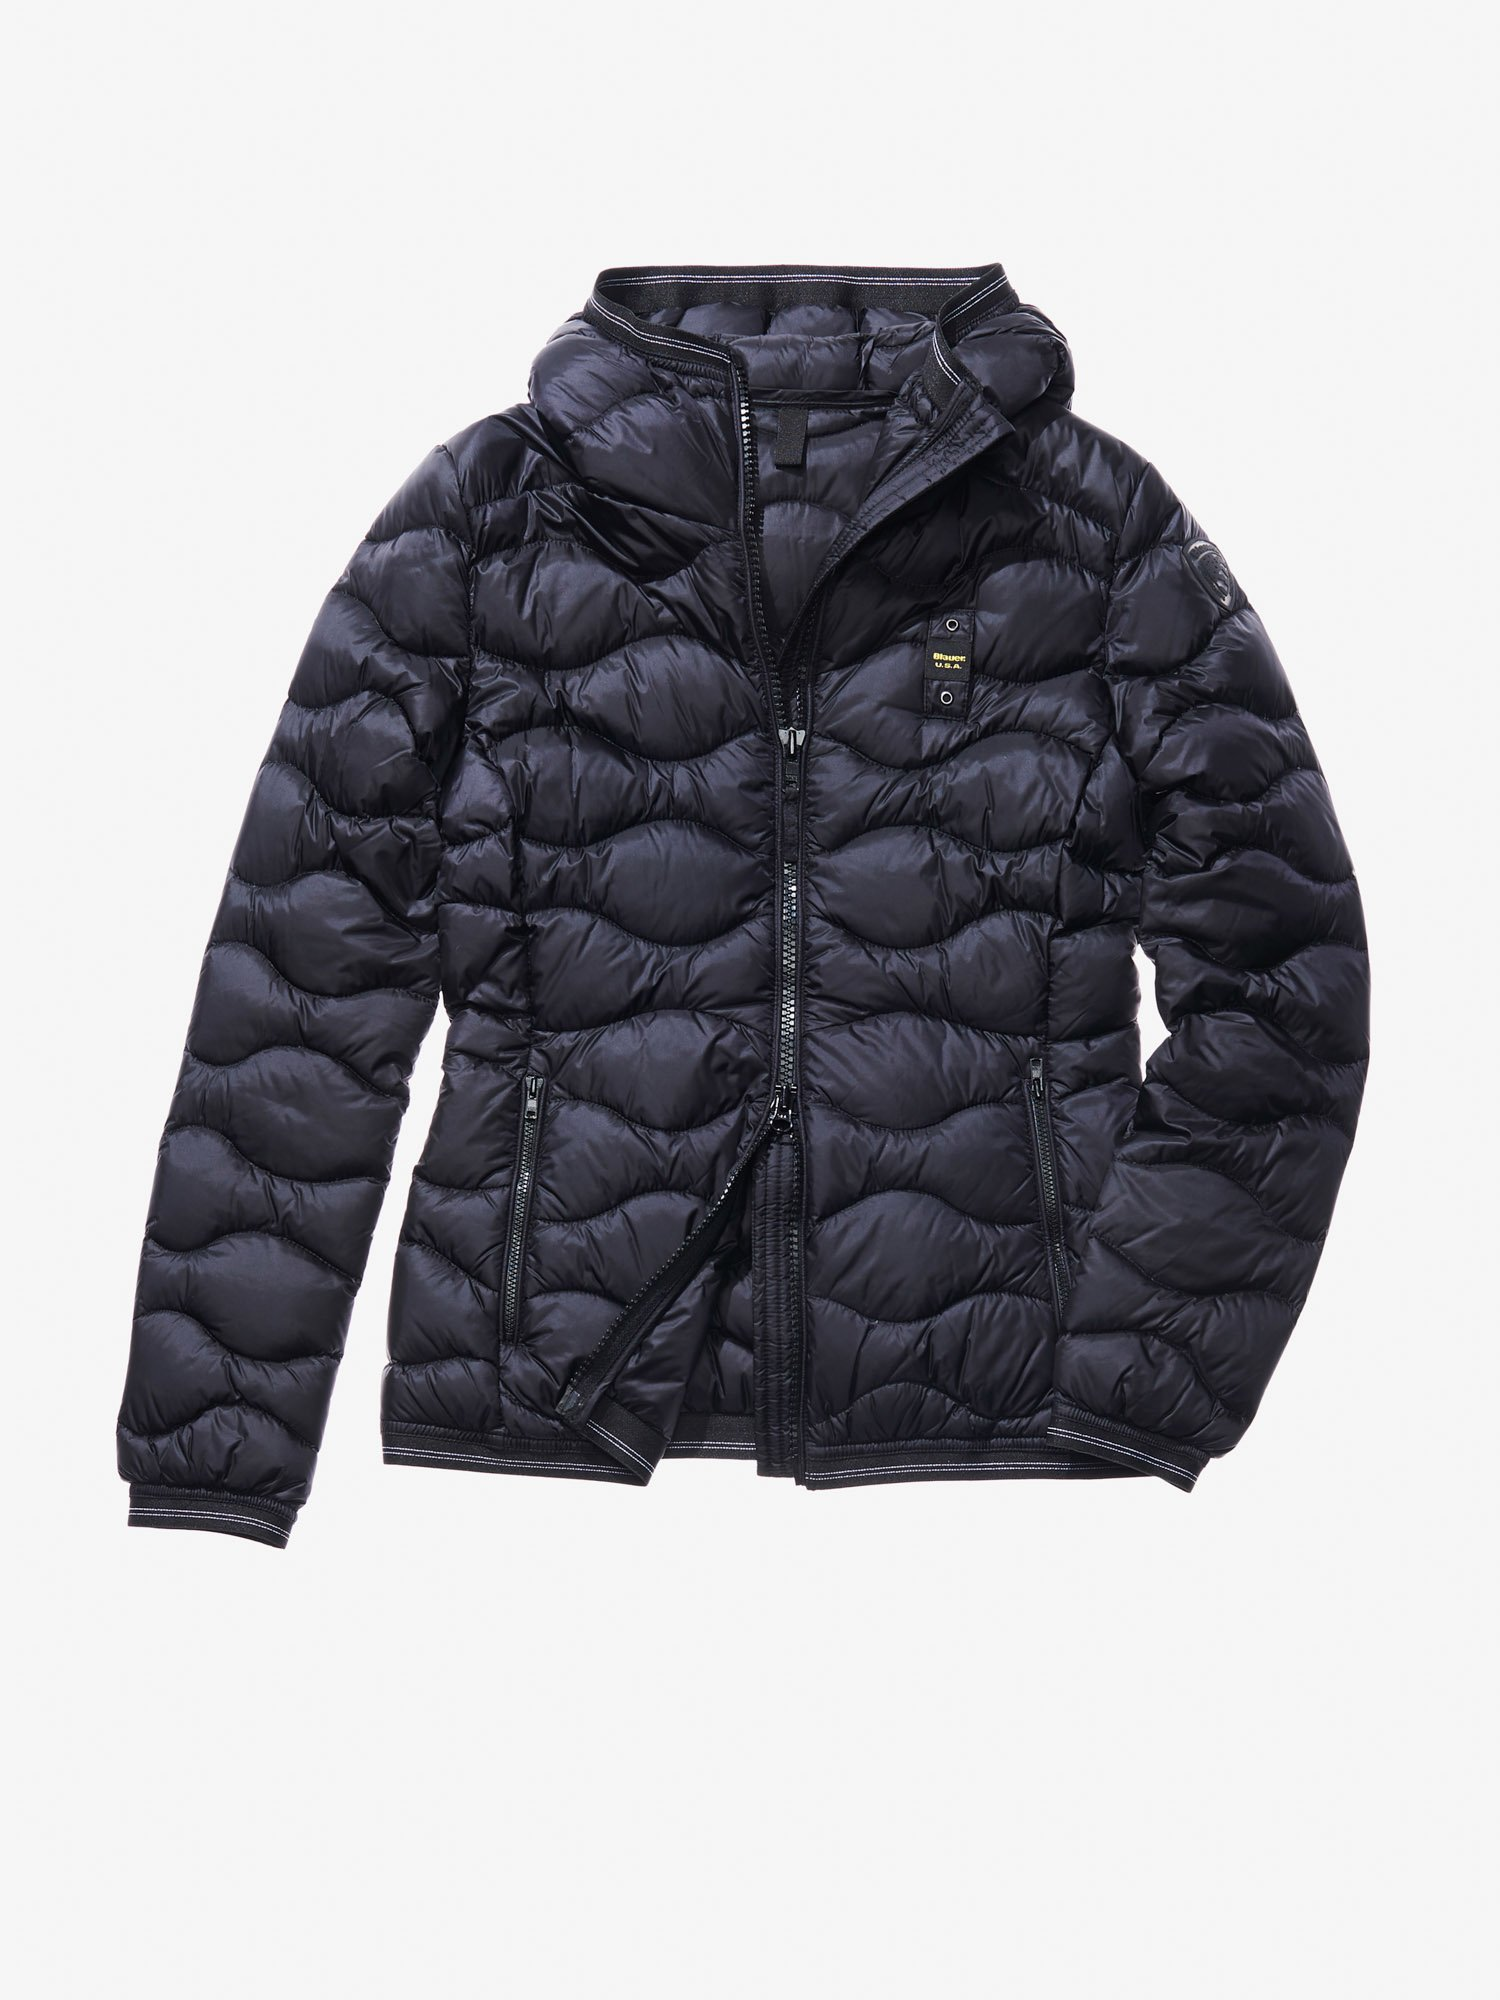 GAIA WAVE-QUILTED MILITARY-STYLE DOWN JACKET - Blauer